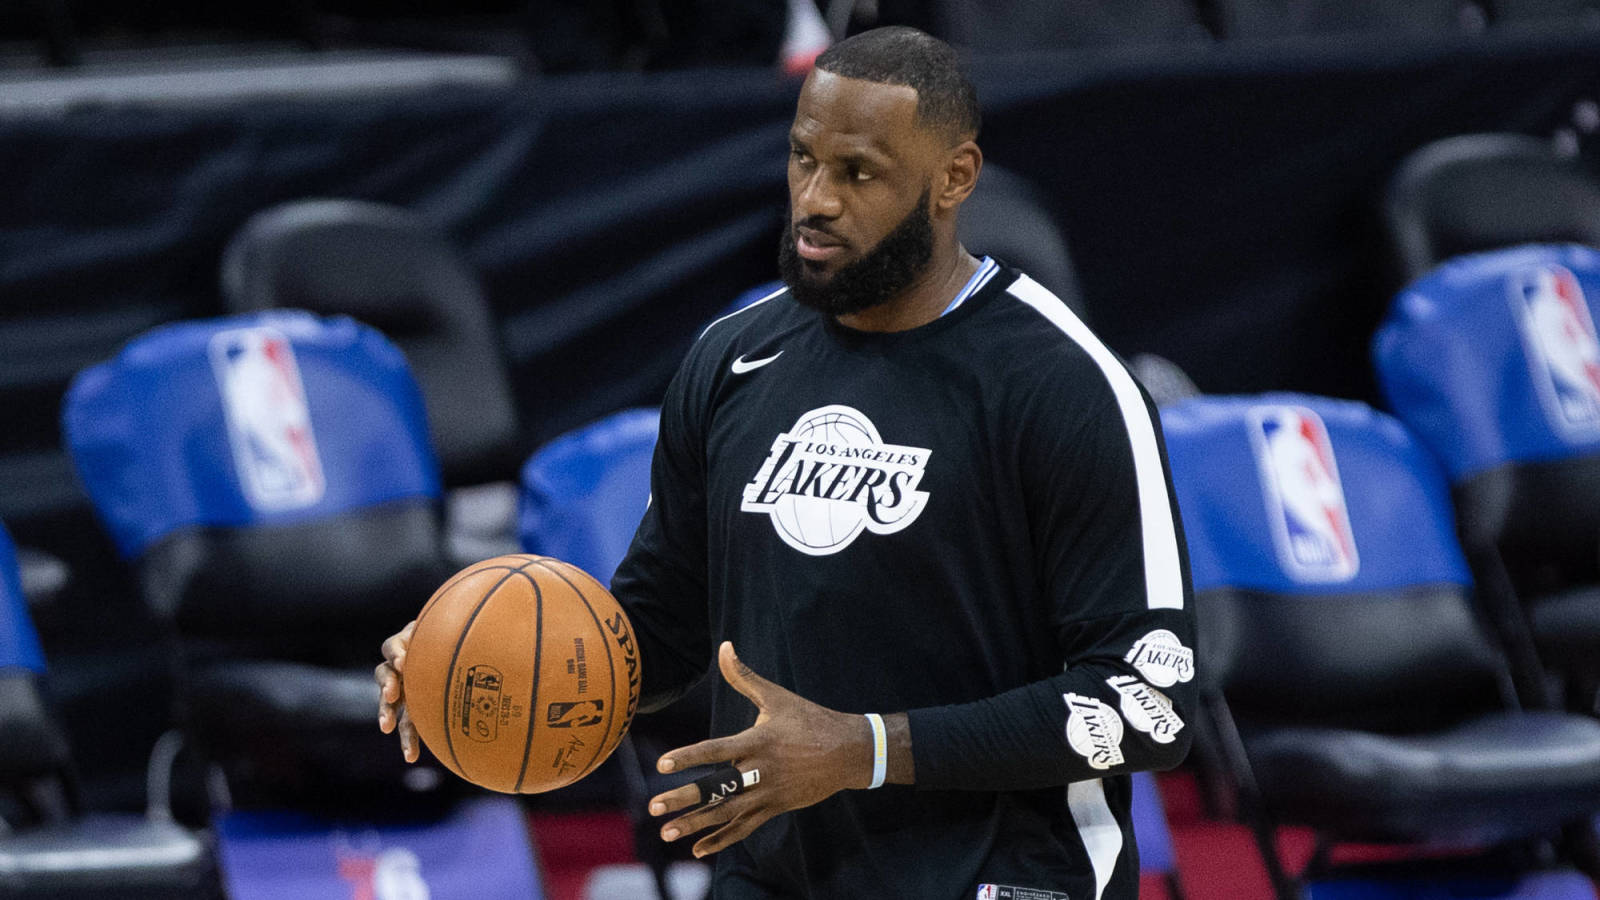 LeBron James: 'I don't even understand why we're having an All-Star Game'